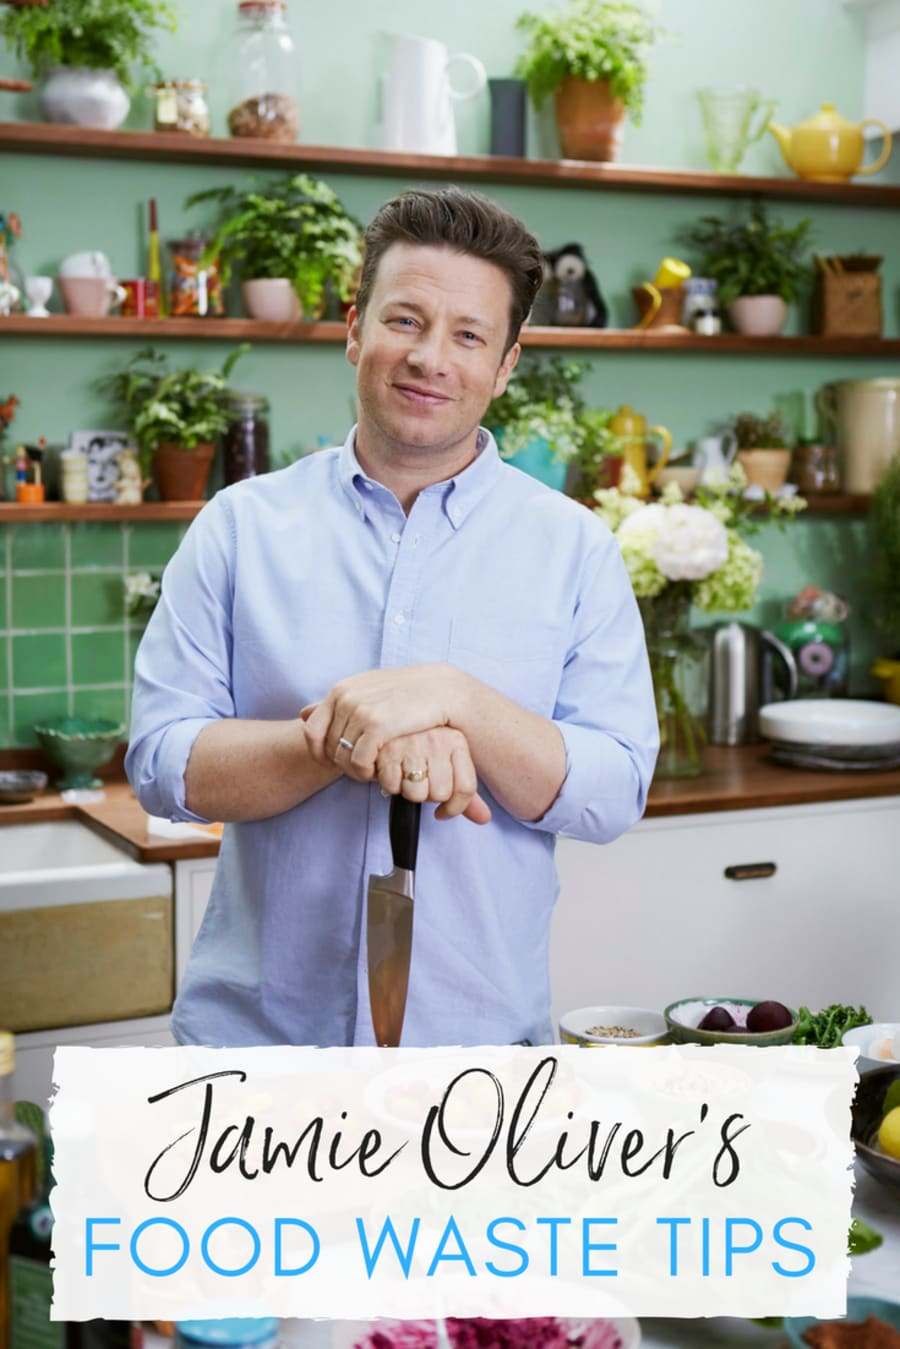 Jamie oliver 39 s food waste tips will make your cooking even - Cuisine jamie oliver ...